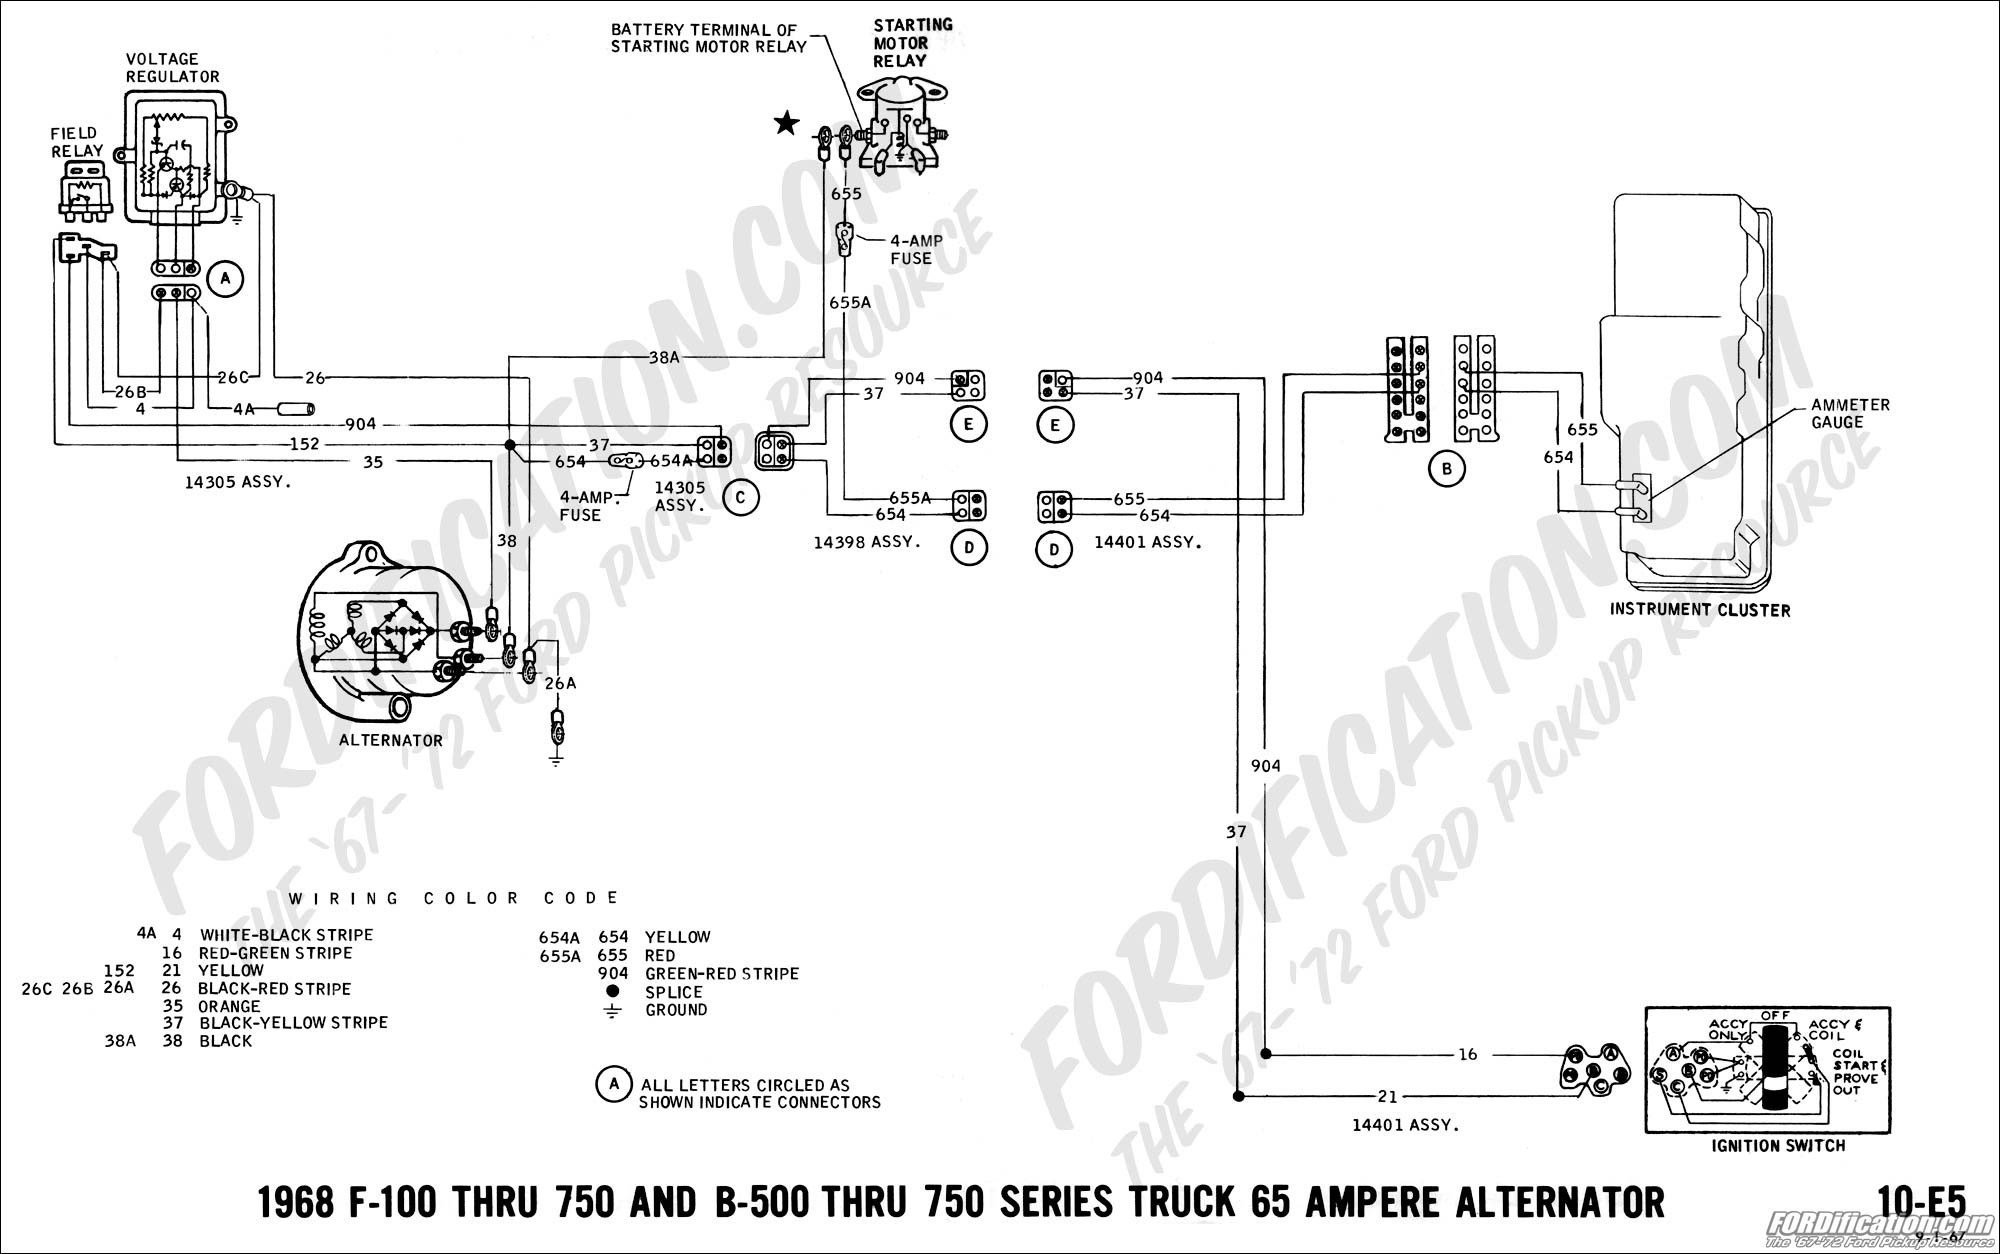 Voltage Ford Diagram Wiring Generator Regulatorto - Wiring Diagrams Hubs - Voltage Regulator Wiring Diagram